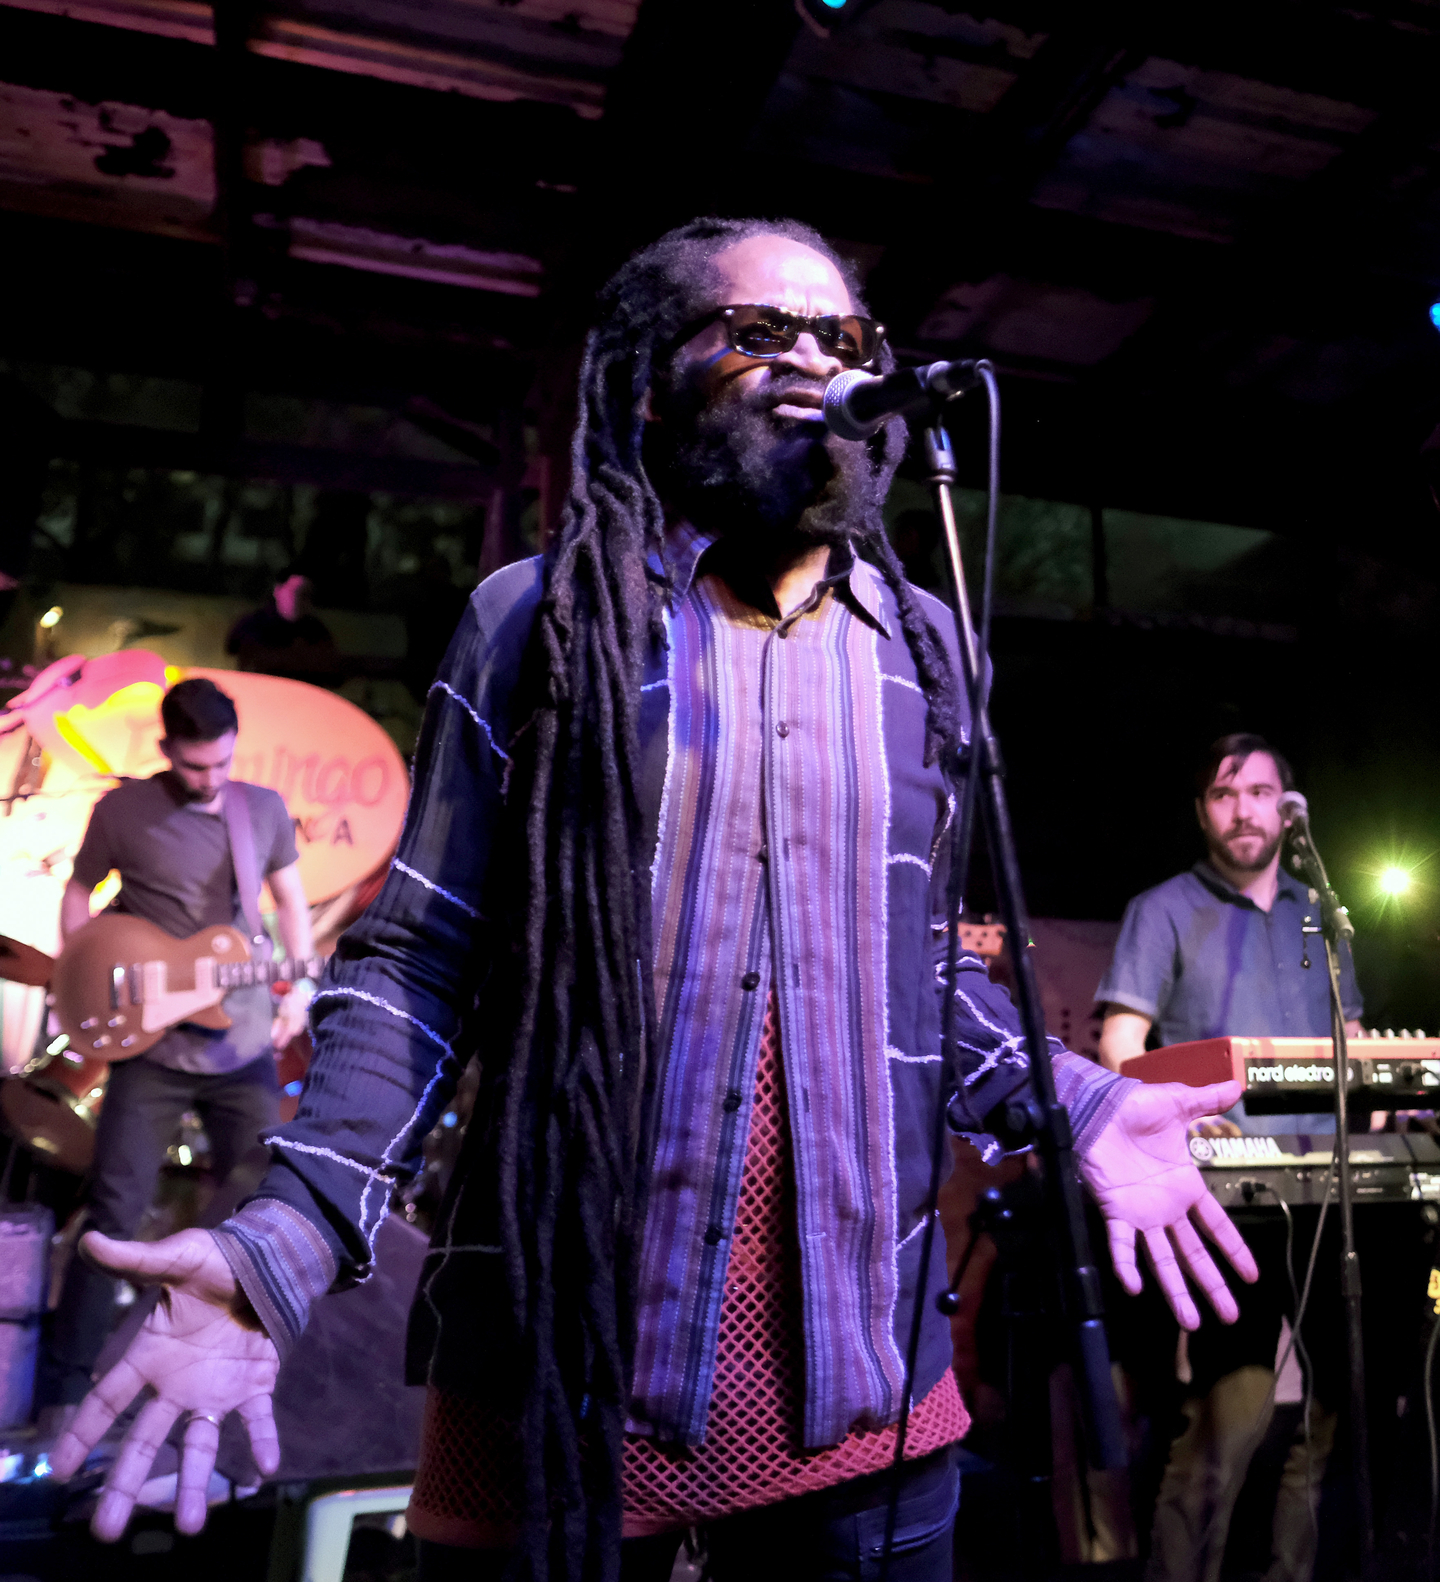 Spiritual of Spiritual & the Oufah band performs onstage at SXSW presents Reggae at Flamingo Cantina.